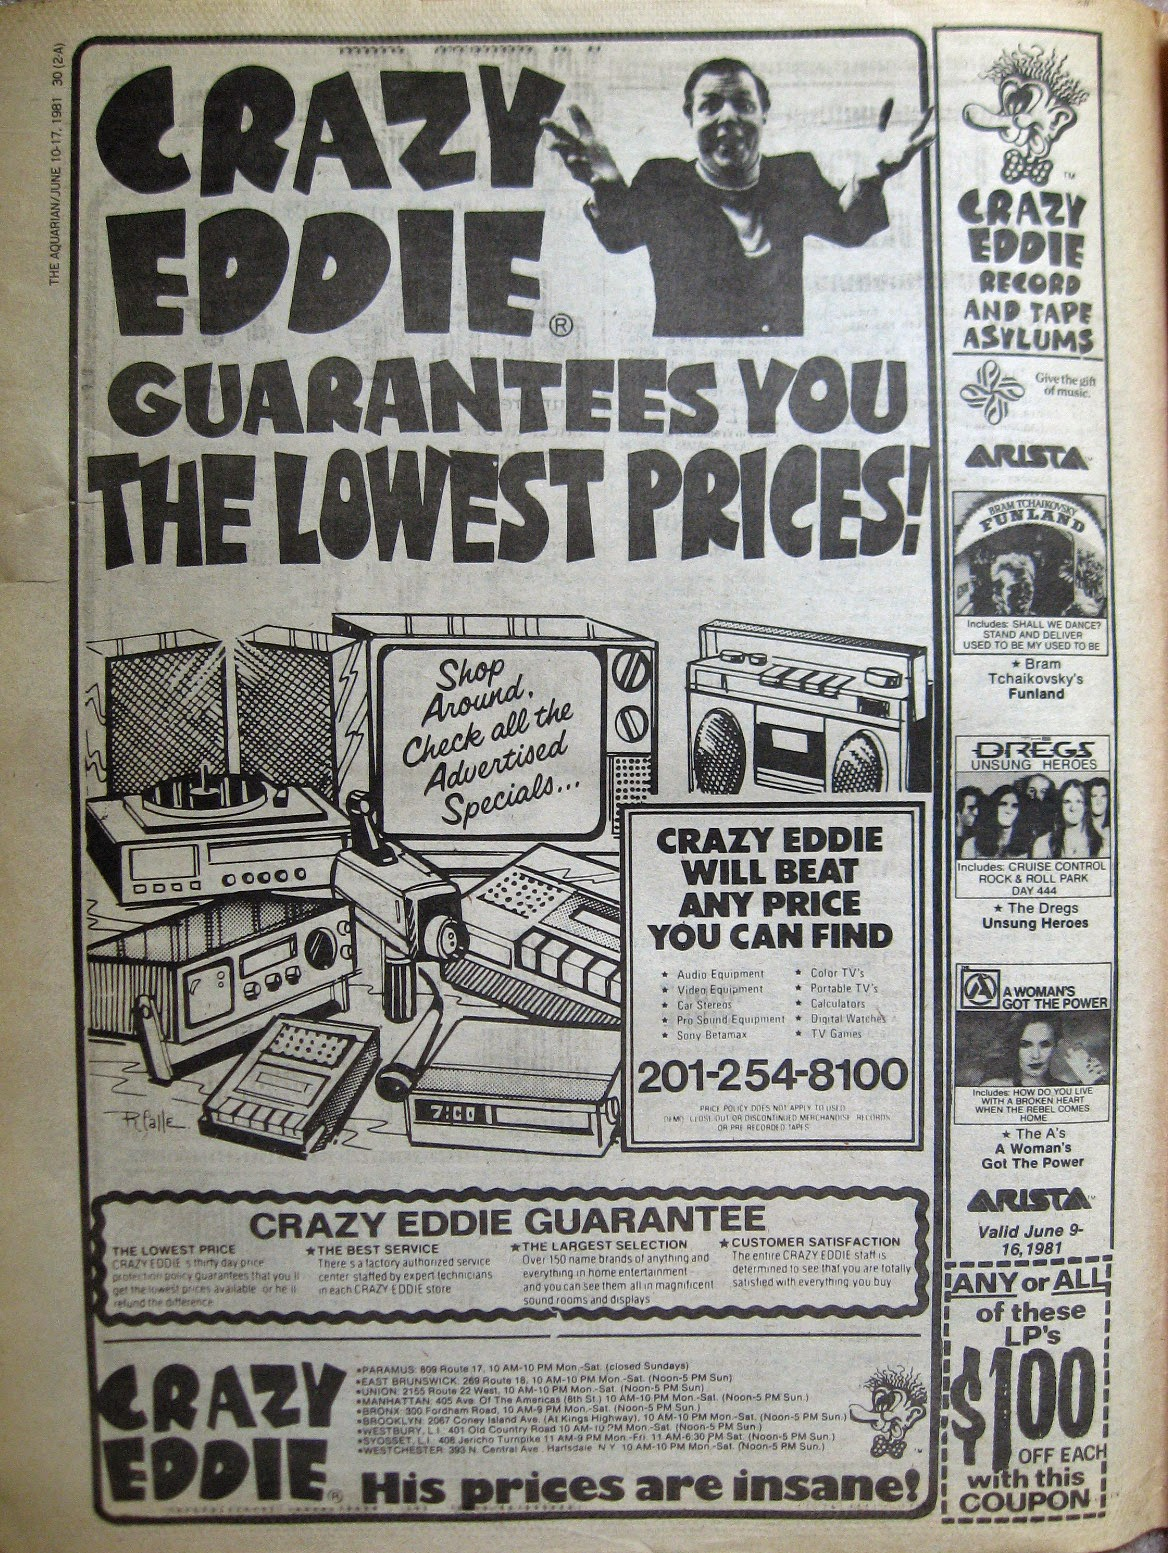 Crazy Eddie ad from the Aquarian Night Owl June 1981